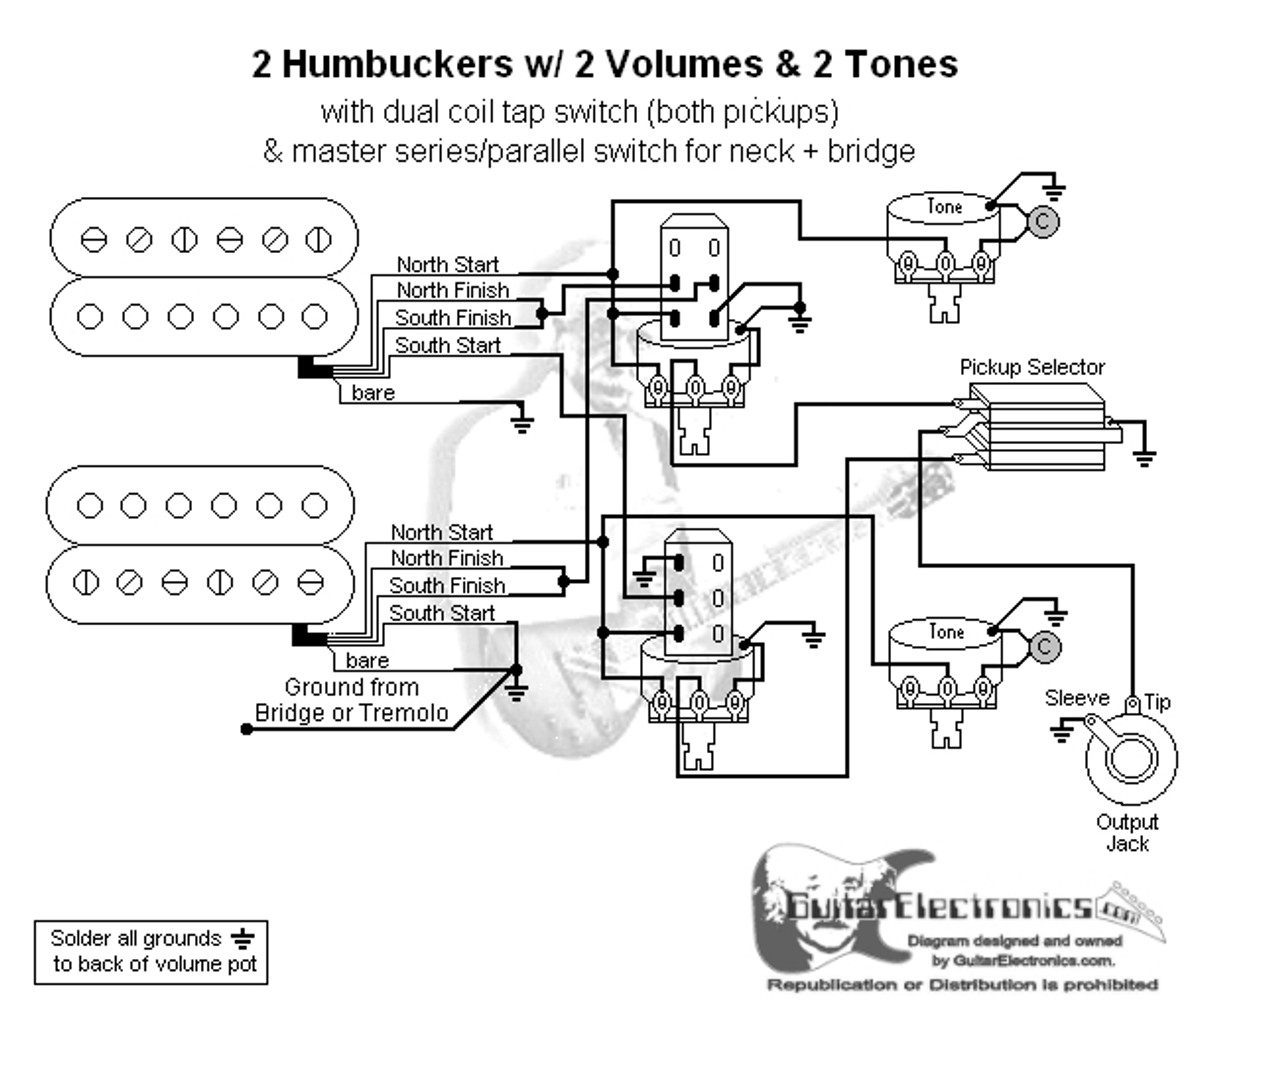 small resolution of 2 hbs 3 way toggle 2 vol 2 tones coil tap u0026 series parallel2 humbuckers